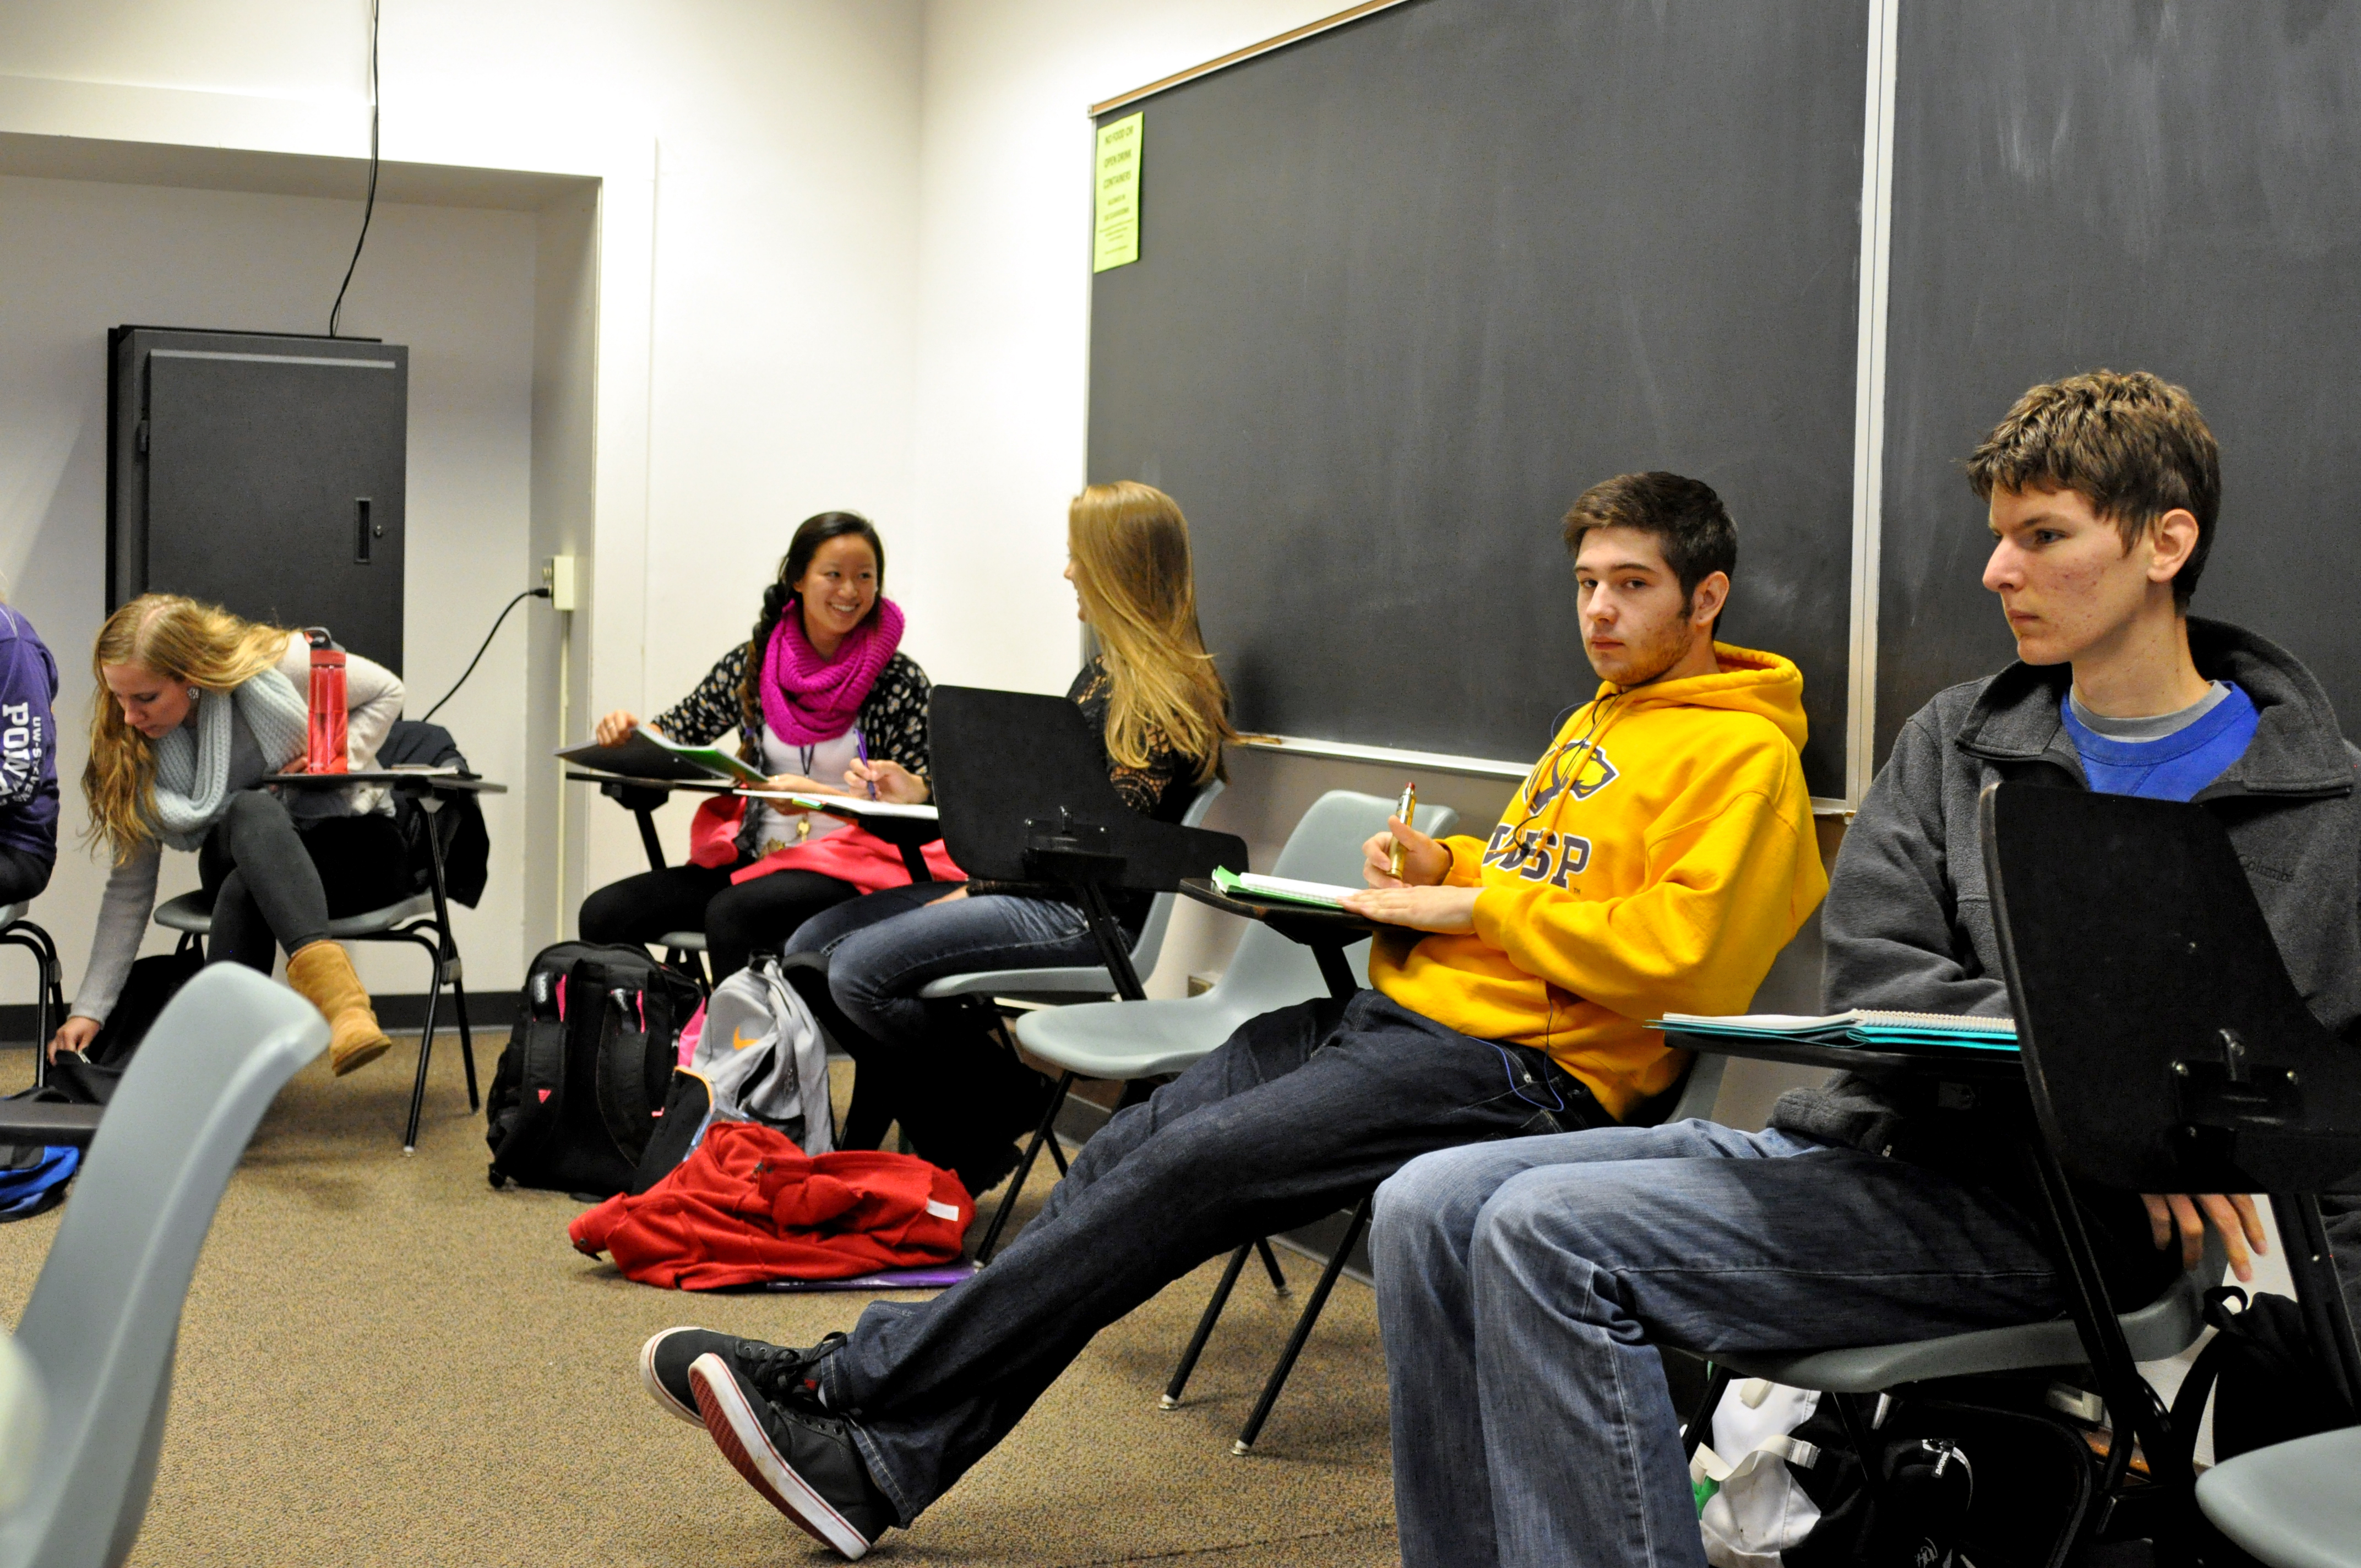 Students prepare to take notes on a video in Professor Stoner's FYS class. Photo by Emily Hoffmann.